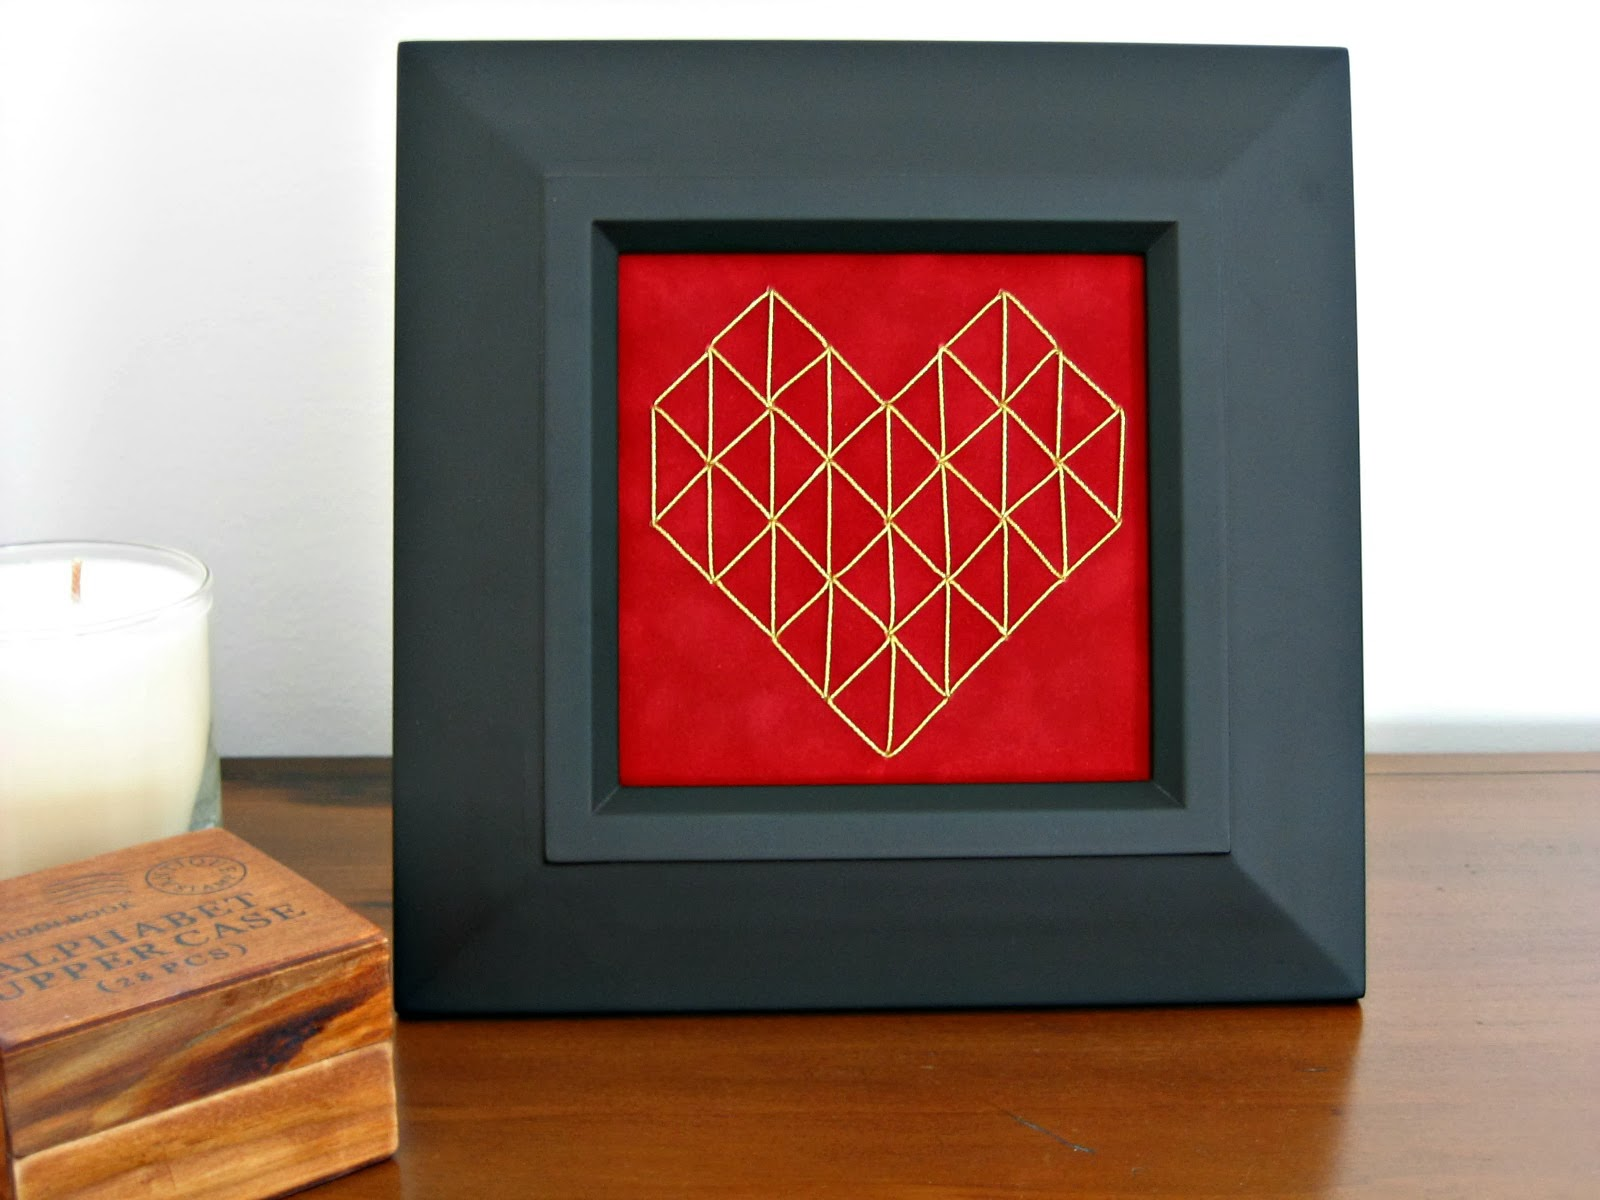 stitched geometric heart on paper in frame